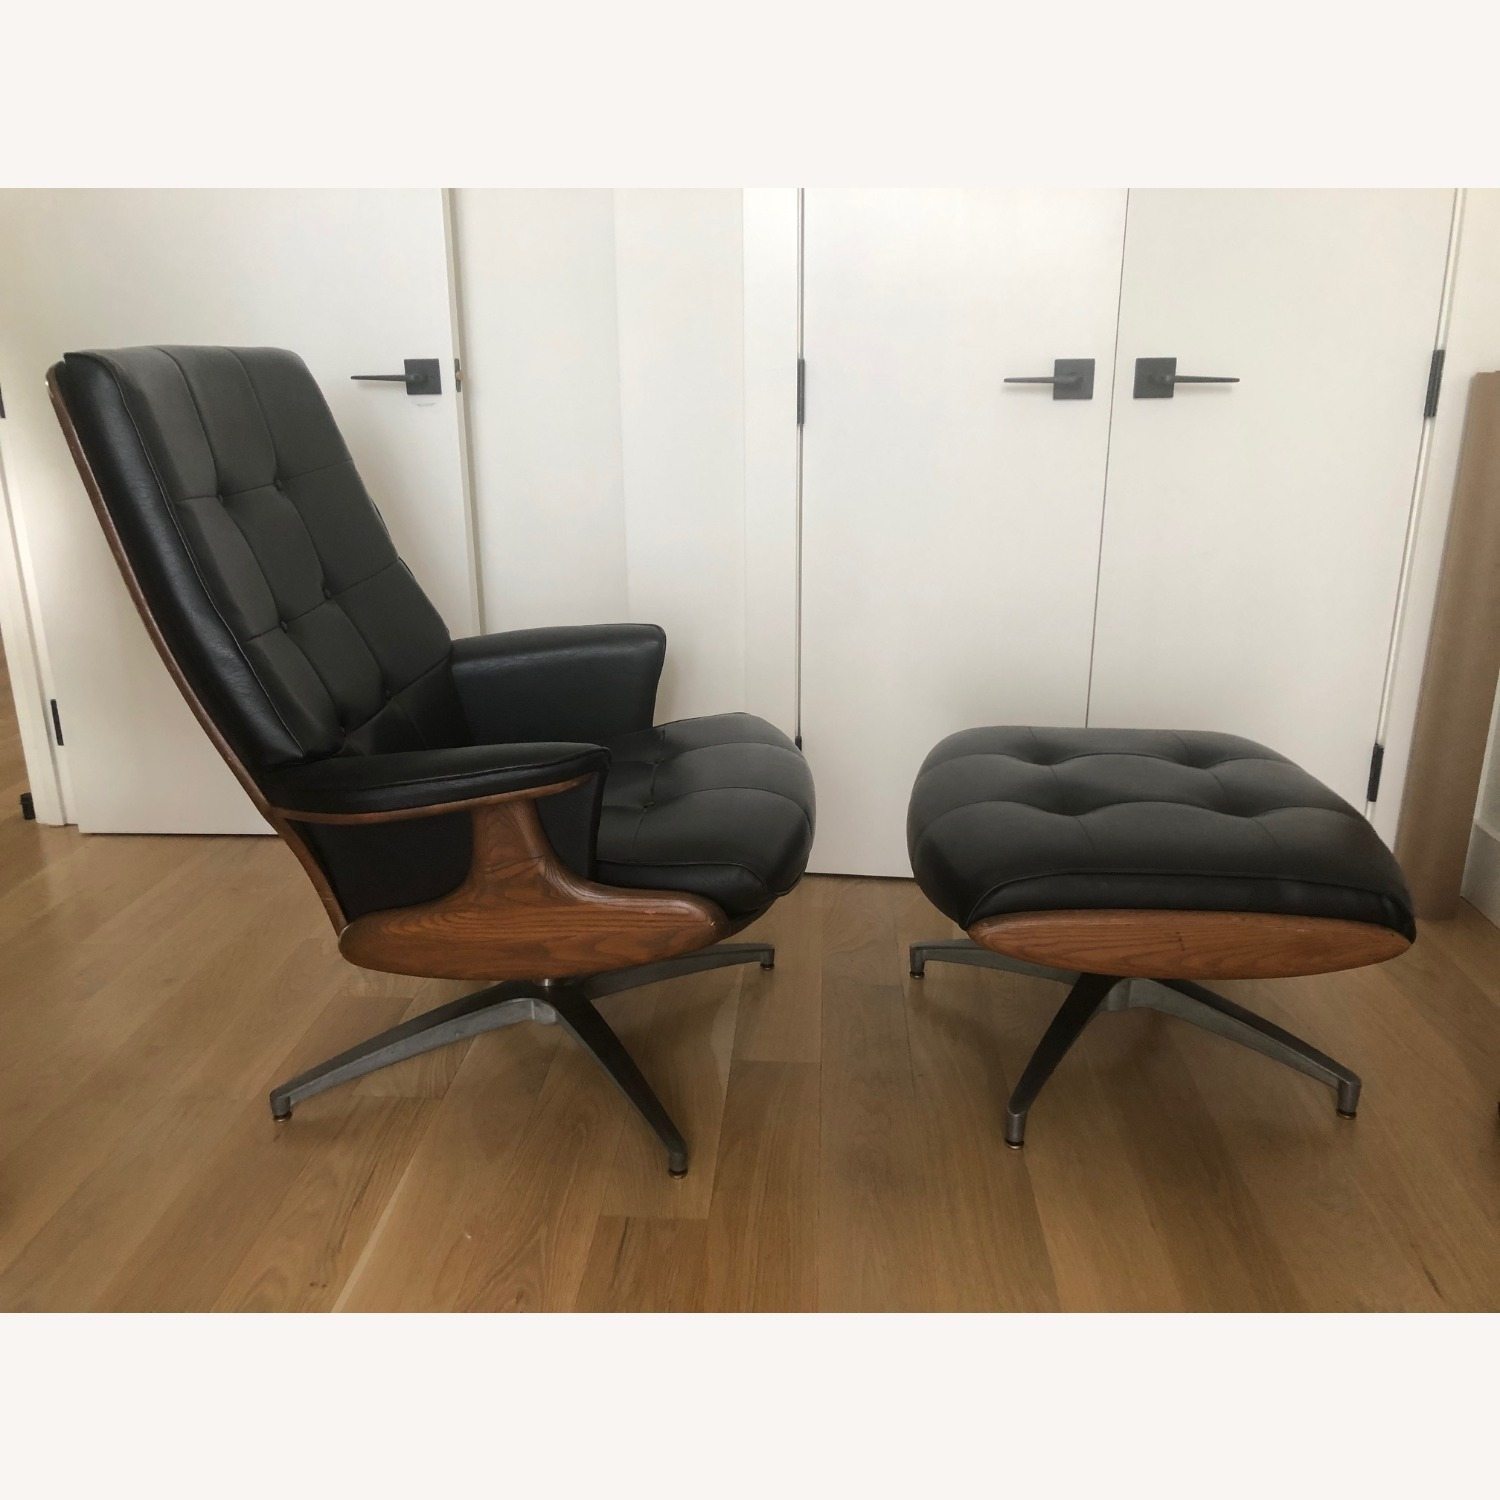 Vintage Black Leather Armchair with Foot Rest - image-3